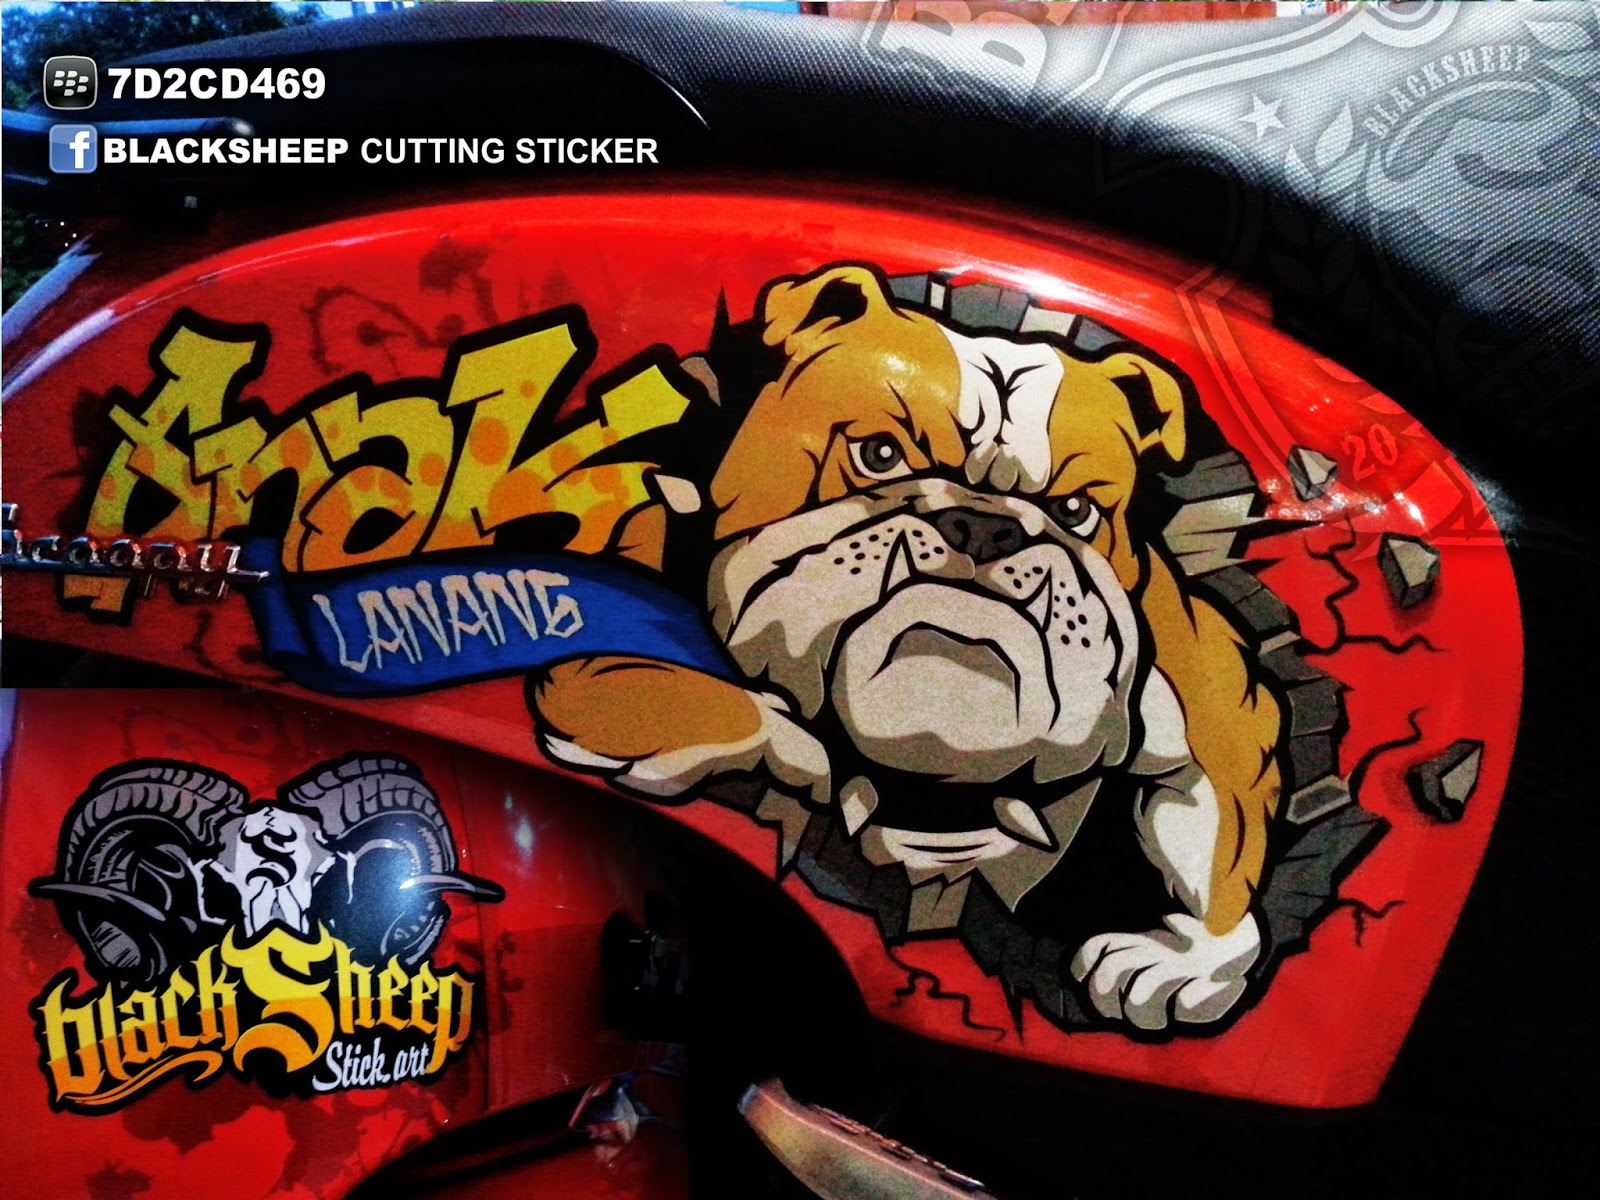 sticker bulldog scoopy cutting sticker